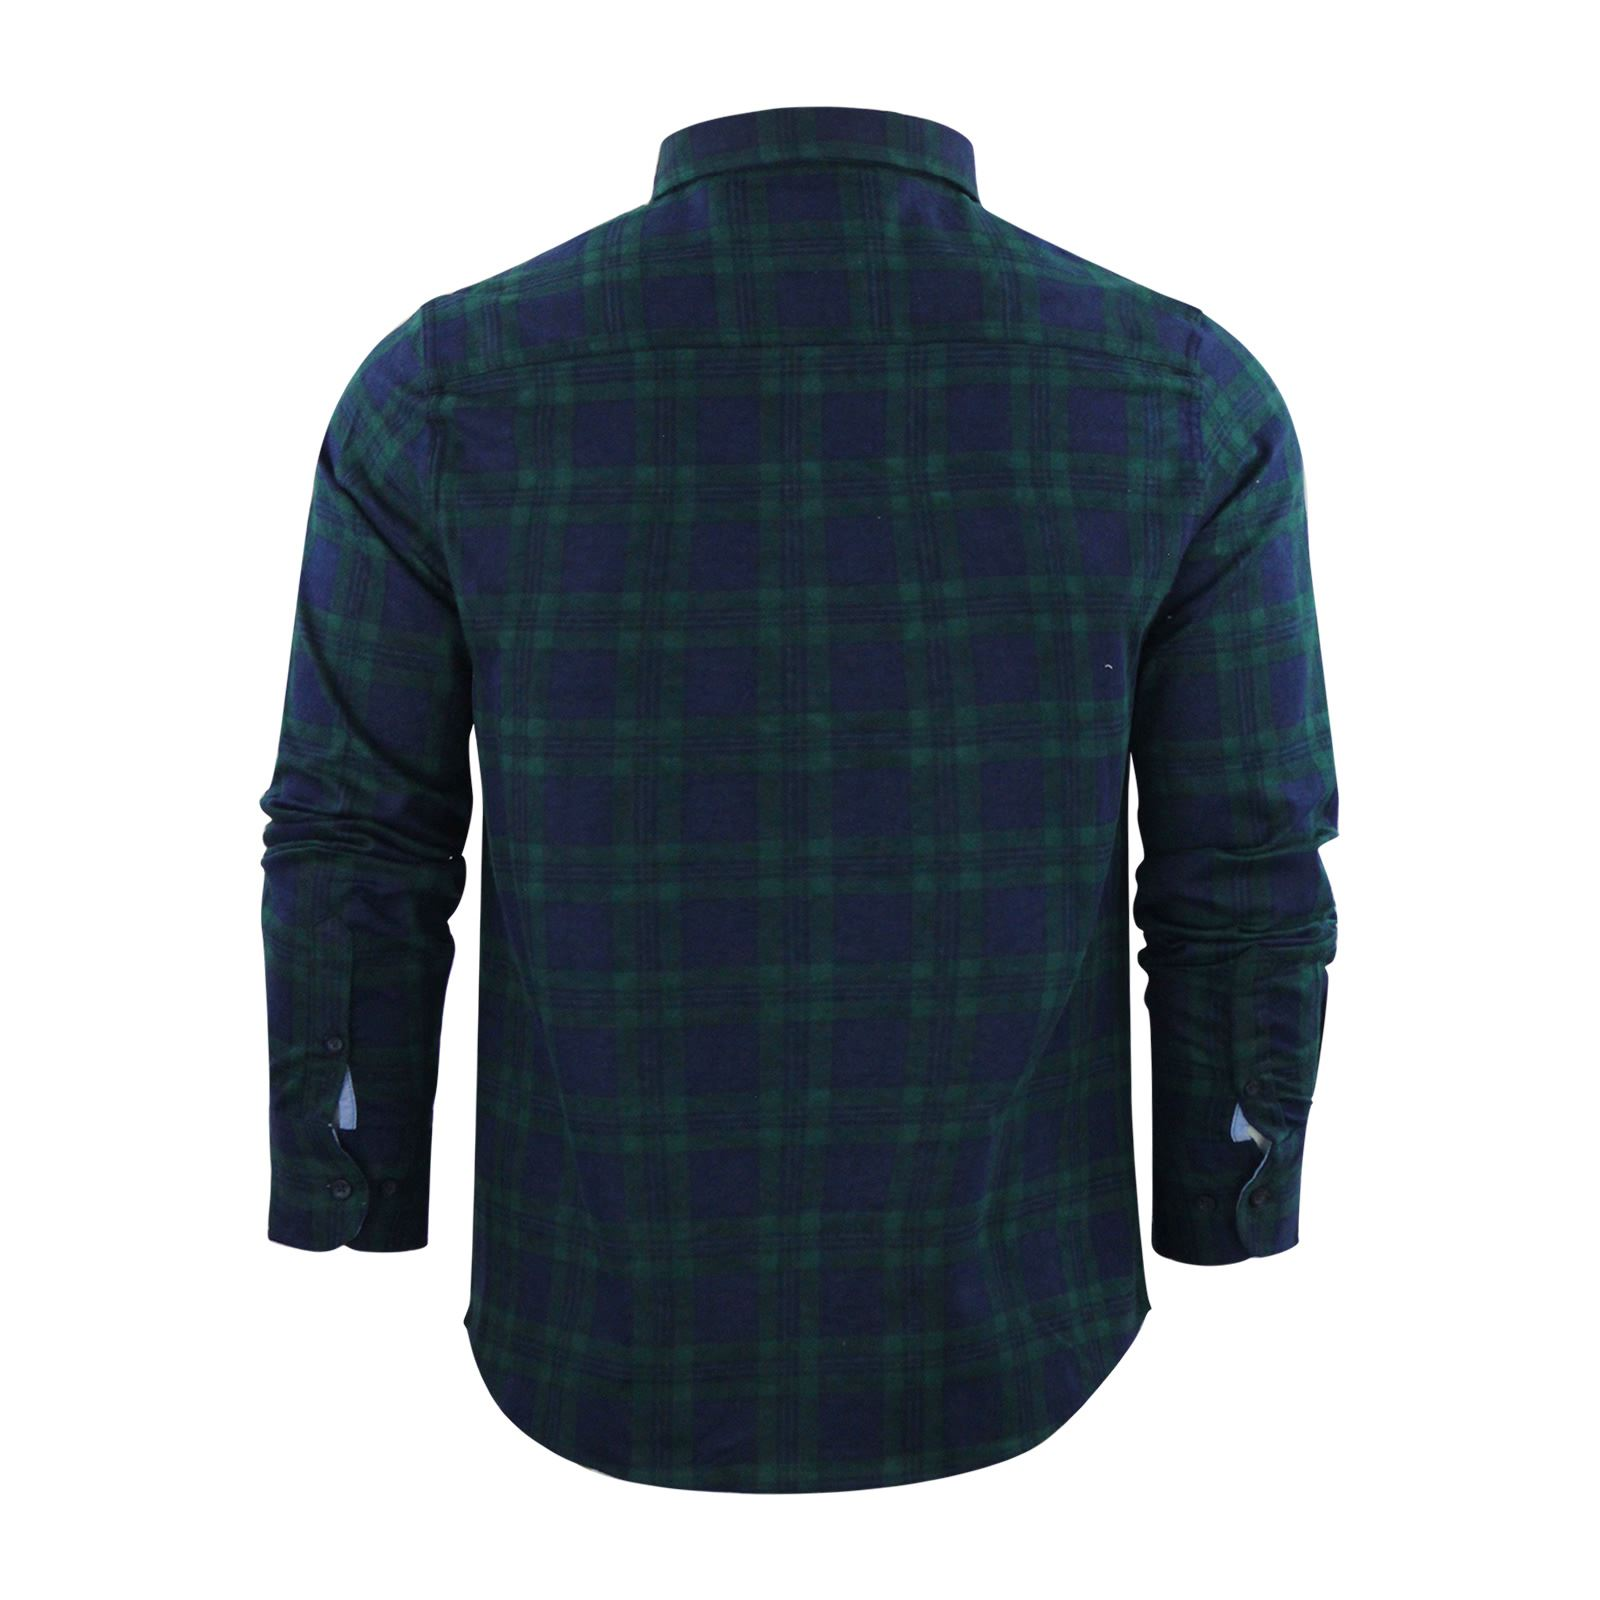 Mens-Check-Shirt-Brave-Soul-Flannel-Brushed-Cotton-Long-Sleeve-Casual-Top thumbnail 75